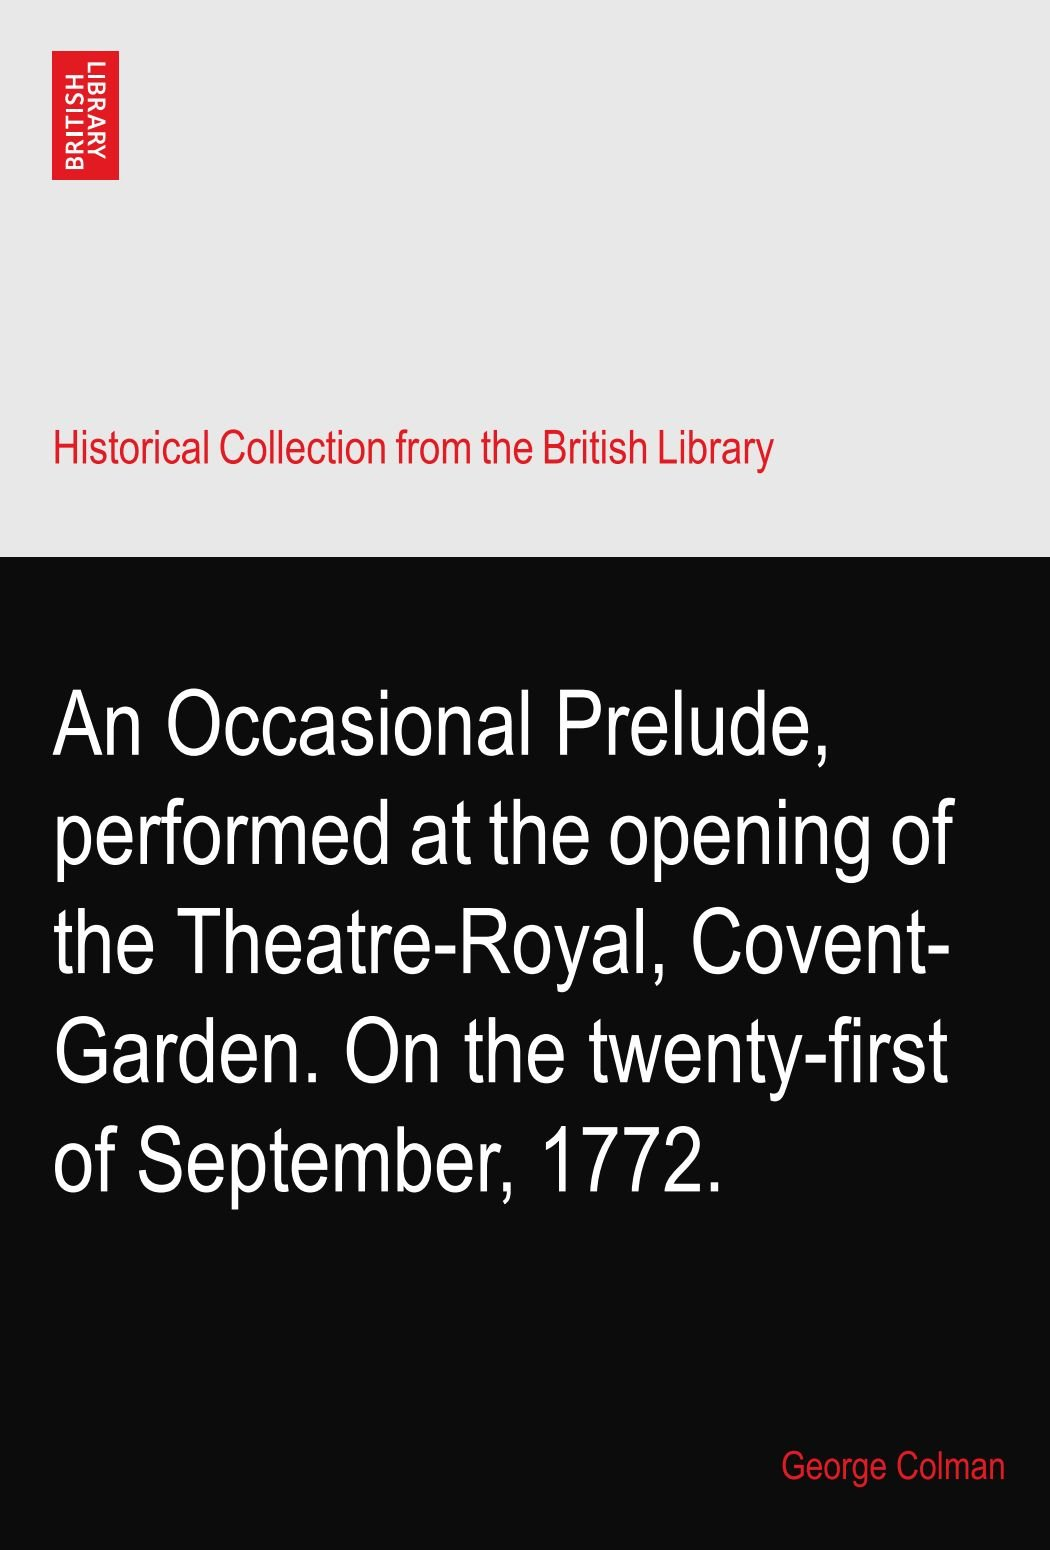 Download An Occasional Prelude, performed at the opening of the Theatre-Royal, Covent-Garden. On the twenty-first of September, 1772. ebook